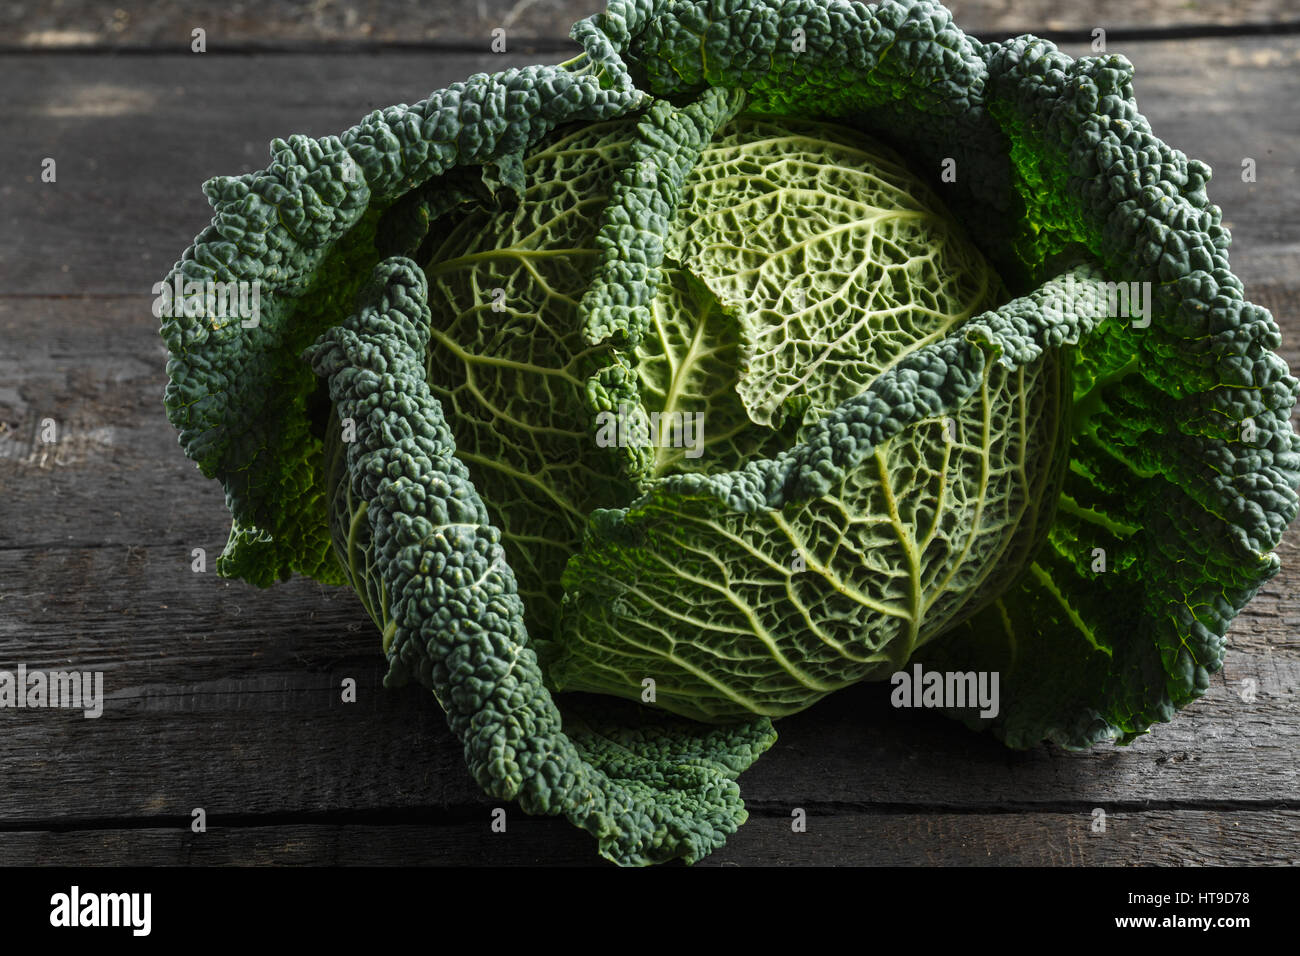 Savoy cabbage on a background of a dark wooden table. - Stock Image